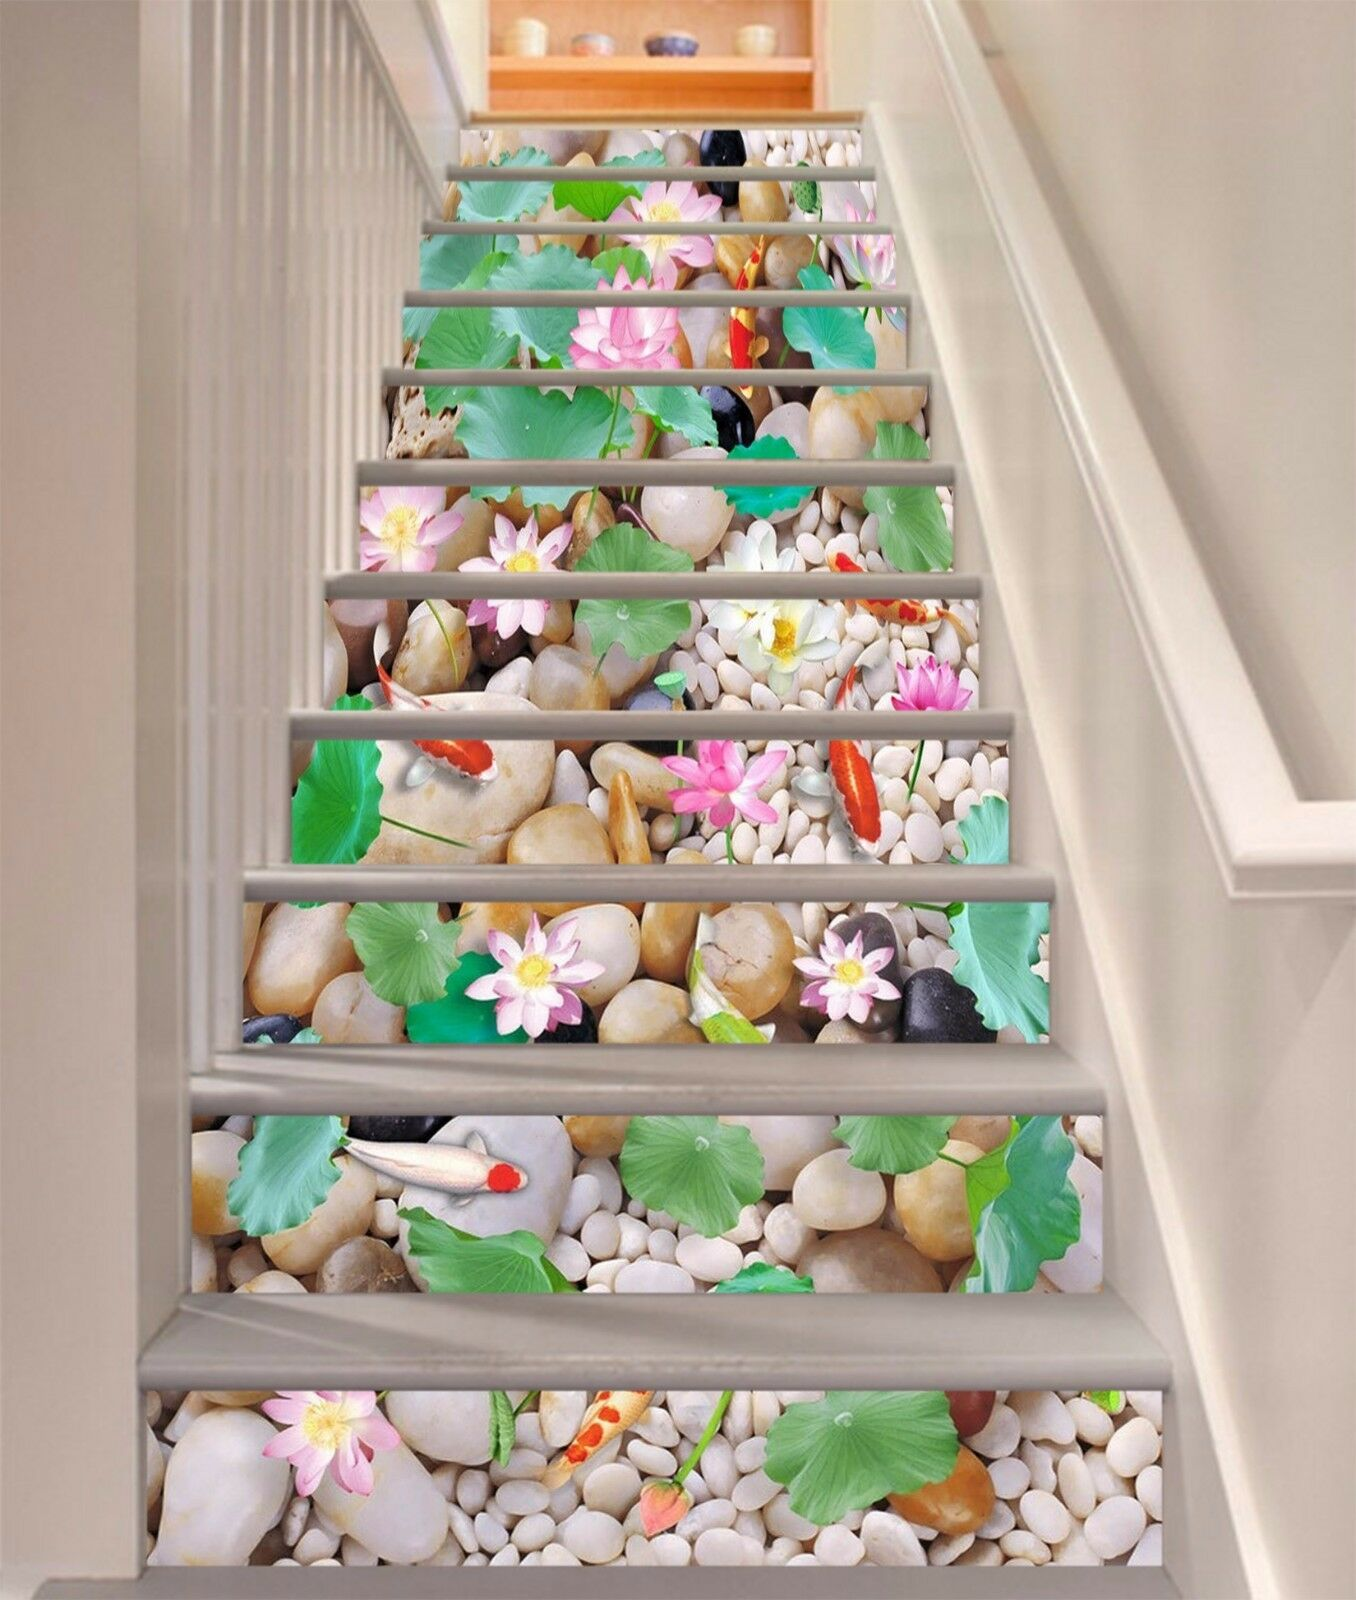 3D Pond stone 45 Stair Risers Decoration Photo Mural Vinyl Decal Wallpaper UK